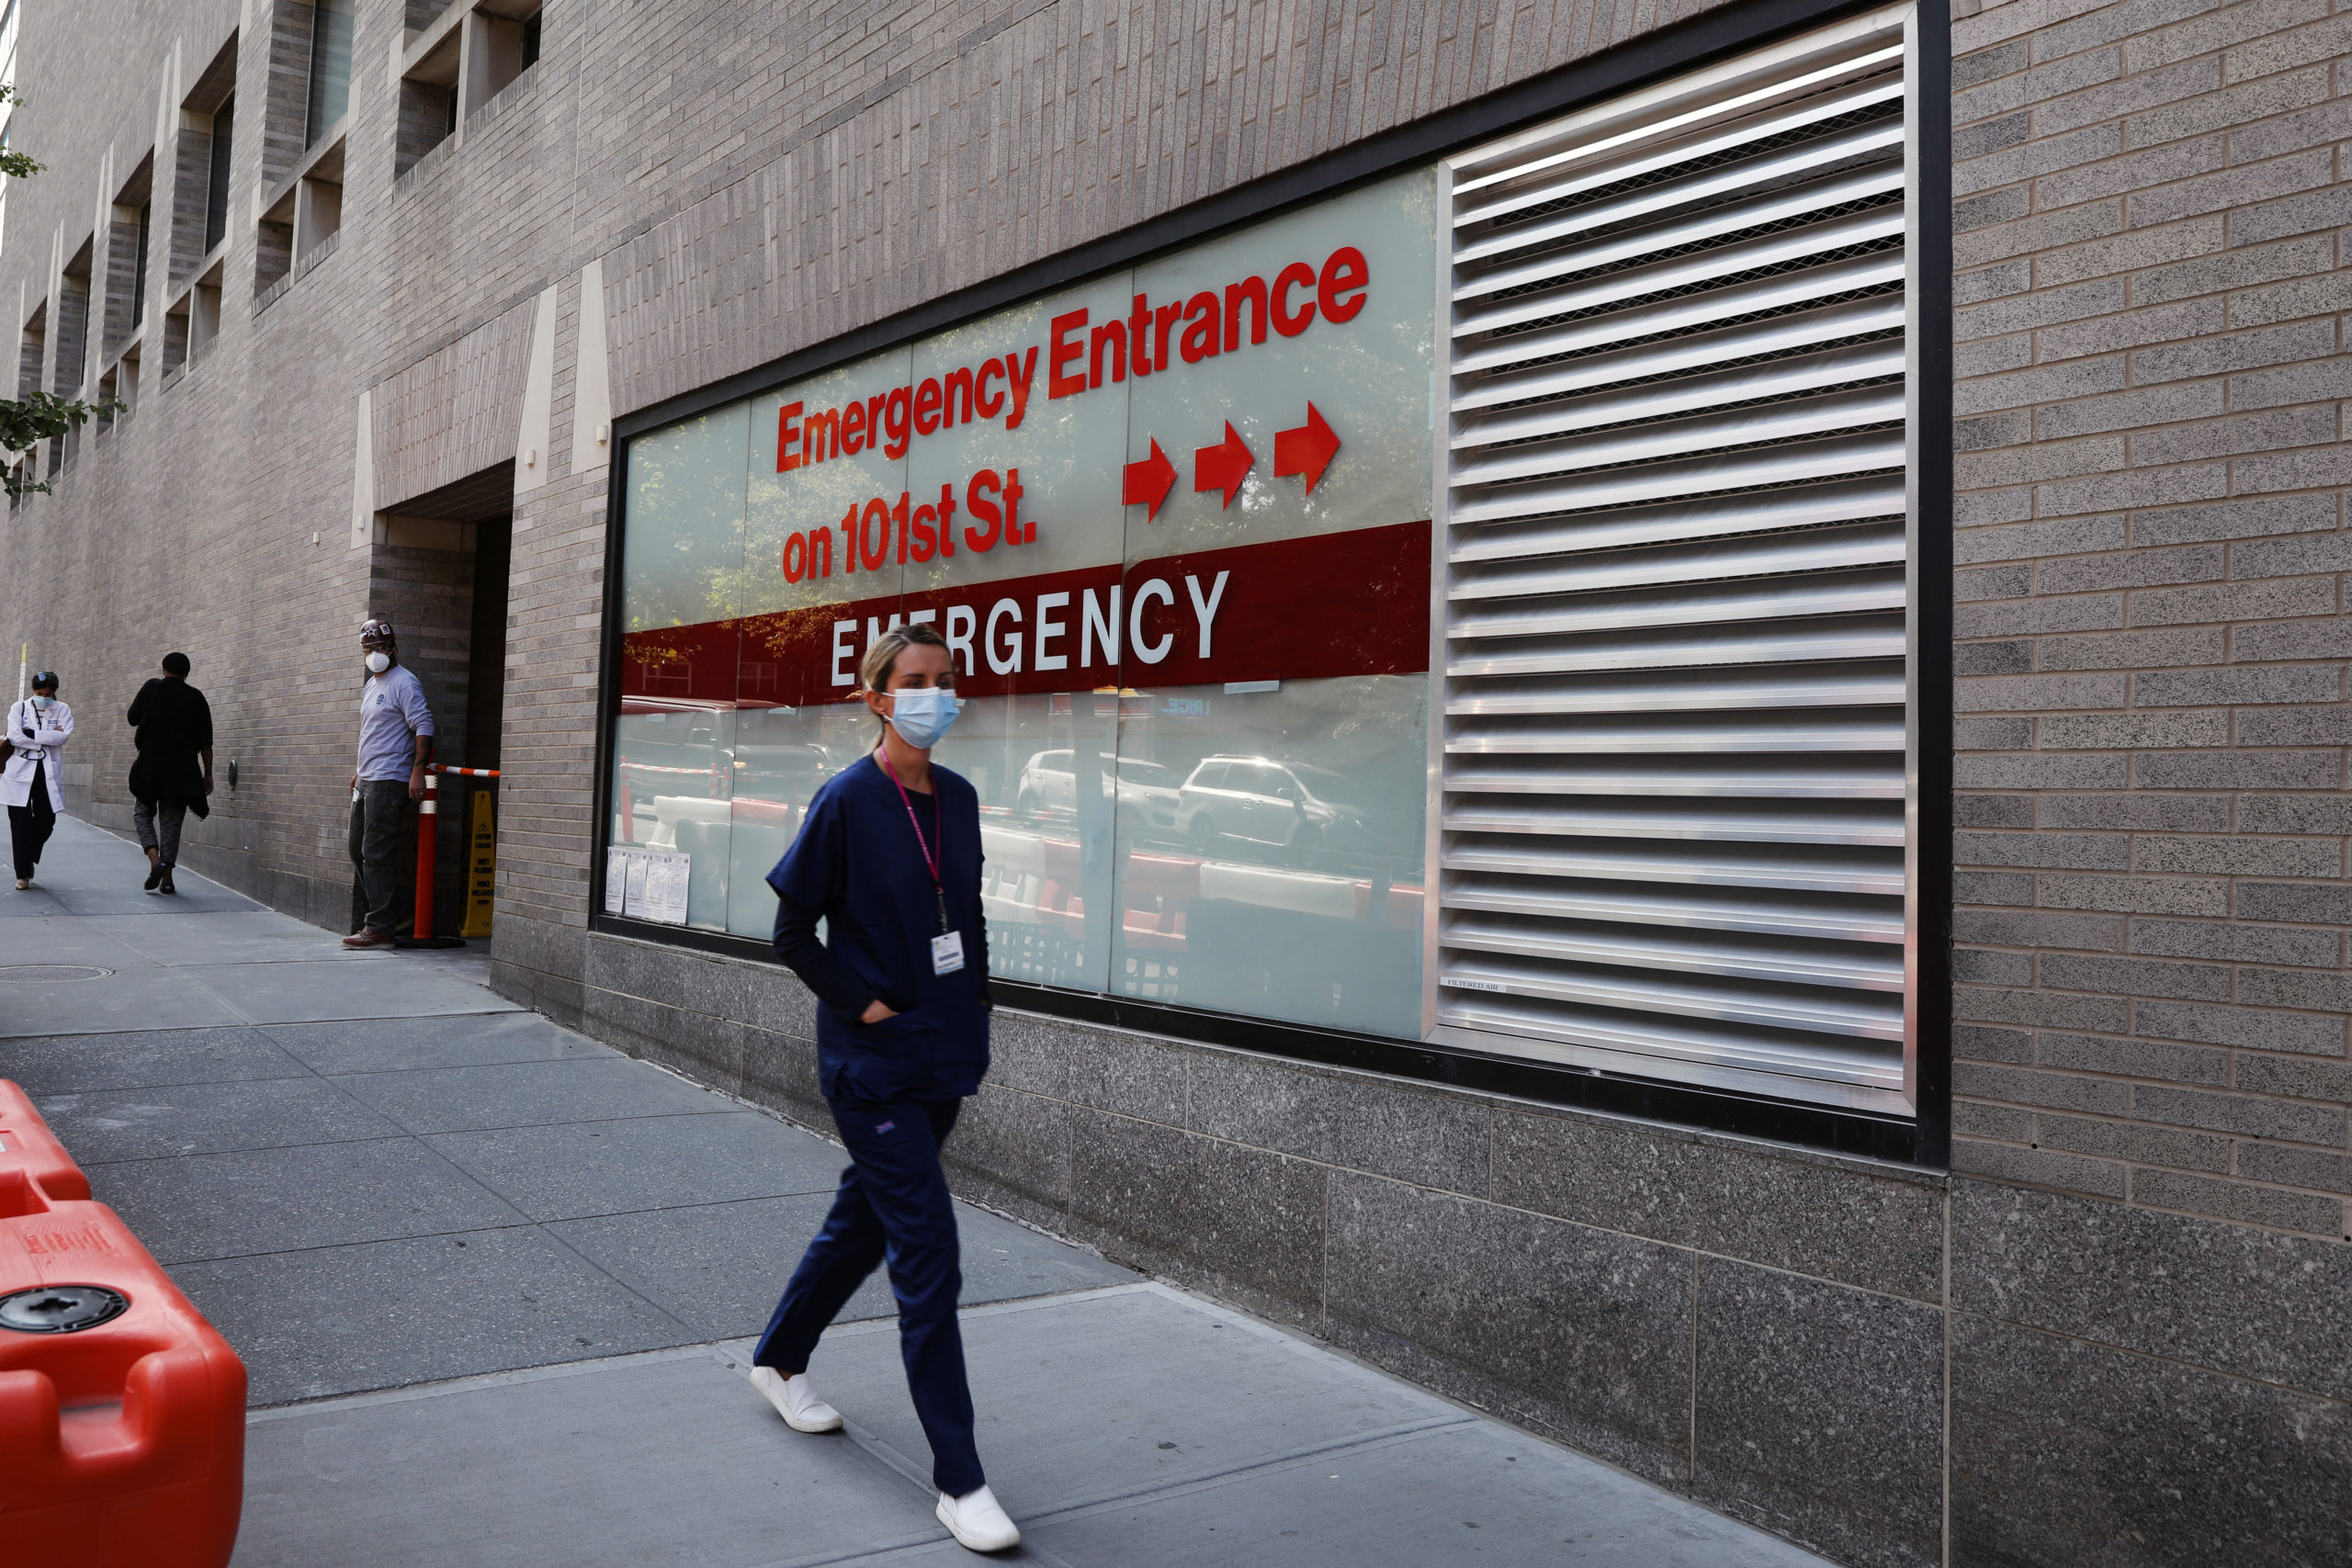 """NEW YORK, NEW YORK - SEPTEMBER 22: A person walks past an """"Emergency Entrance"""" sign at Mount Sinai Hospital in Manhattan, which has treated hundreds of COVID-19 patients since March, on September 22, 2020 in New York City. While New York's infection rate is currently below one percent, the U.S. has reported more than 6.7 million confirmed cases and 200,000 deaths attributed to COVID-19, making it the world leader in both. (Photo by Spencer Platt/Getty Images)"""